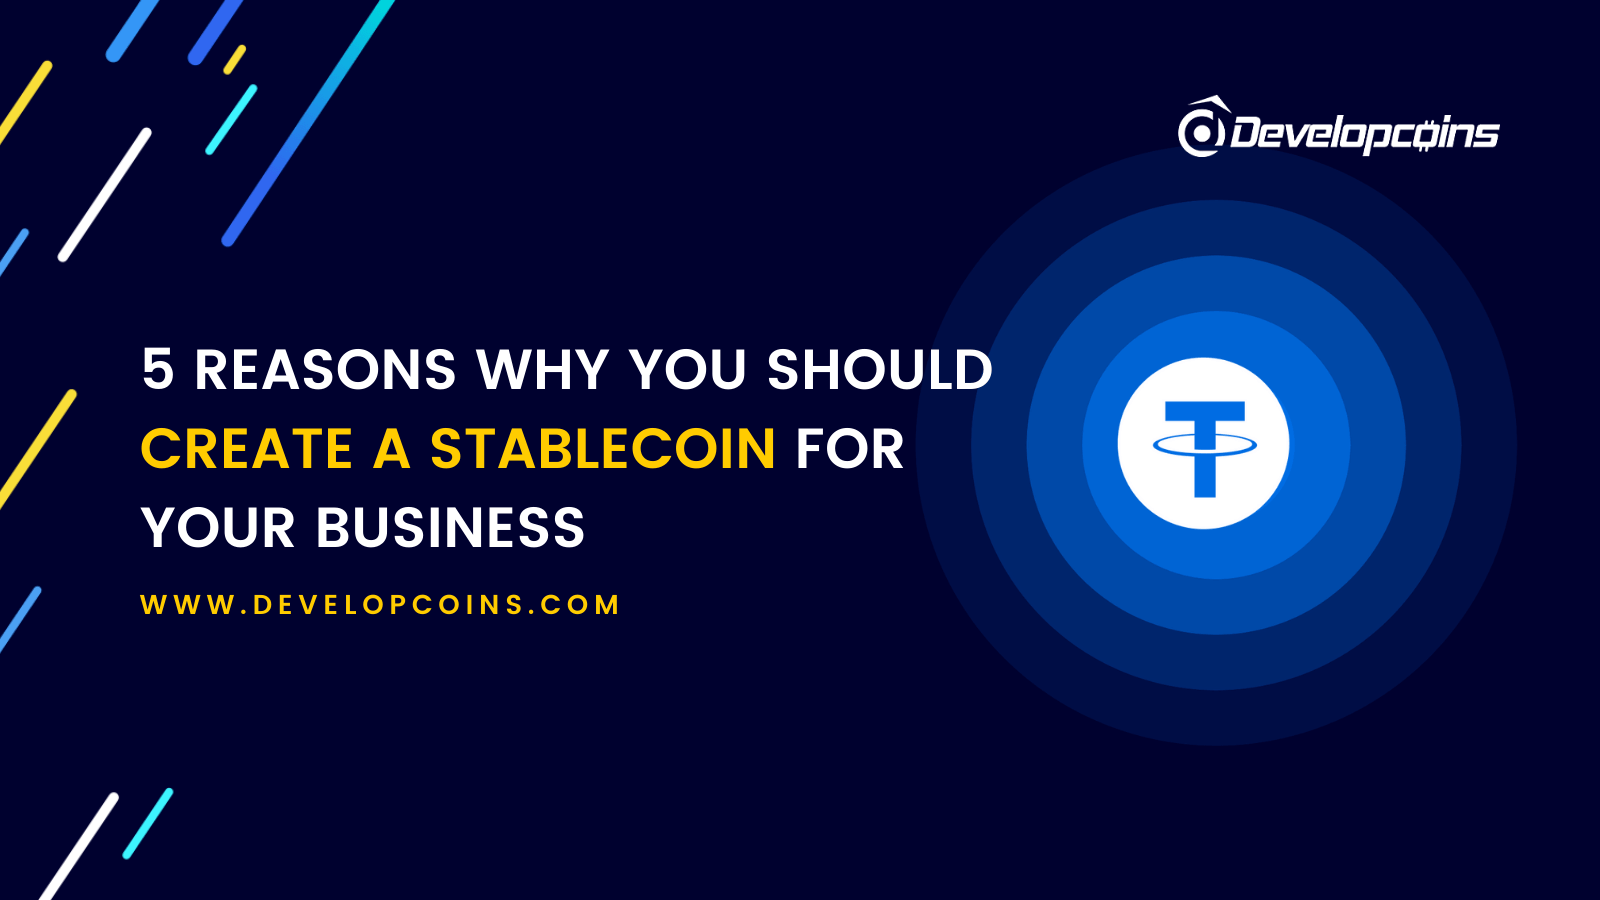 5 Reasons Why You Should Create A Stablecoin For Your Business